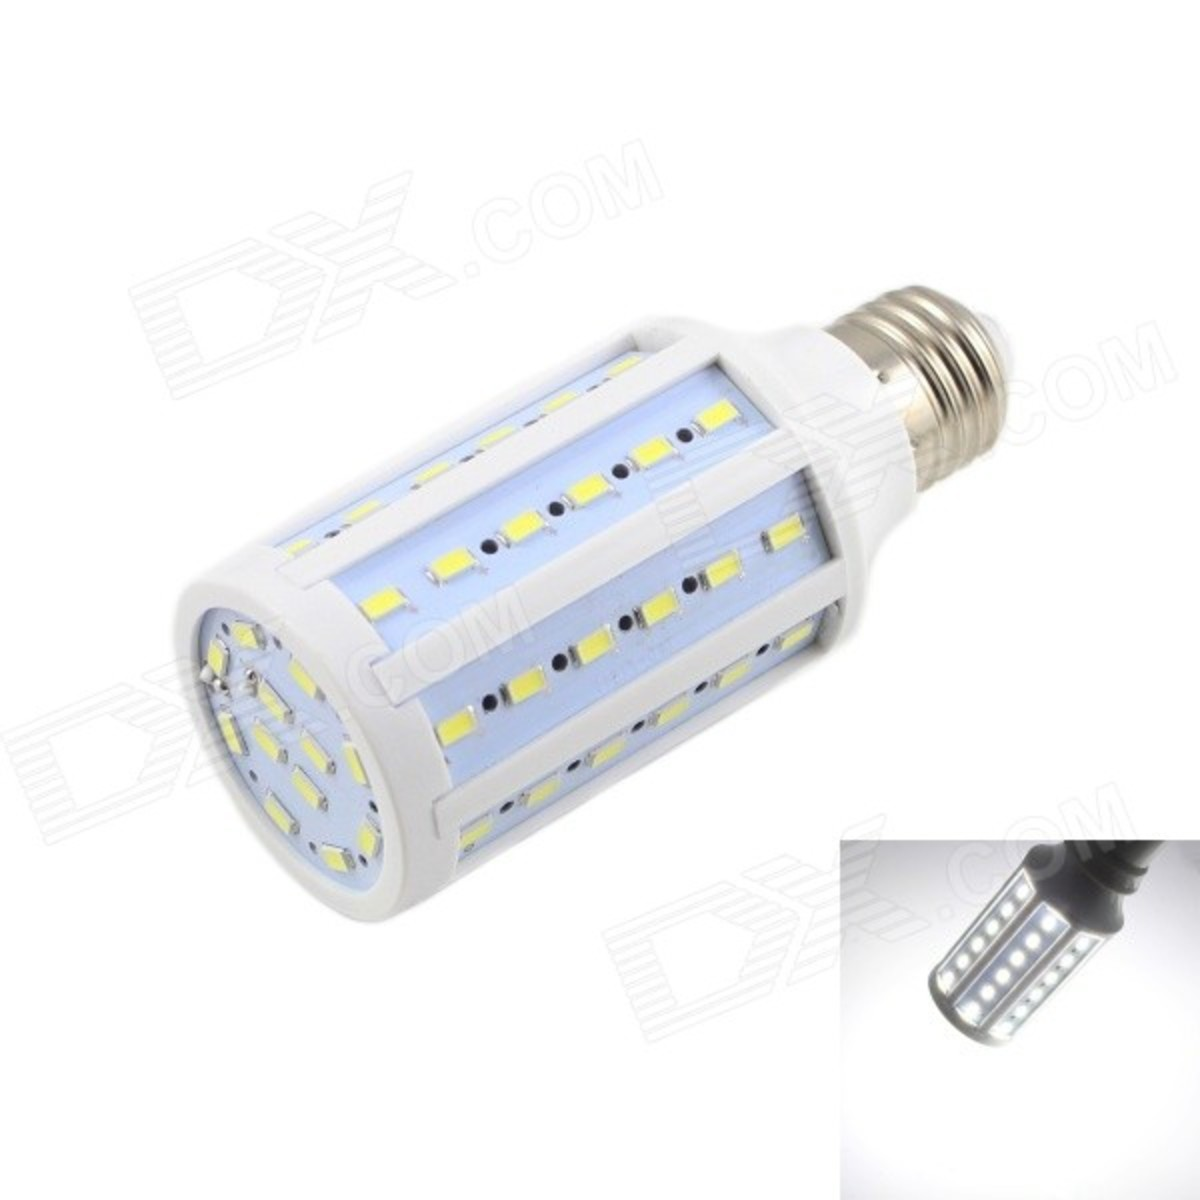 LED lamp from Dealextreme